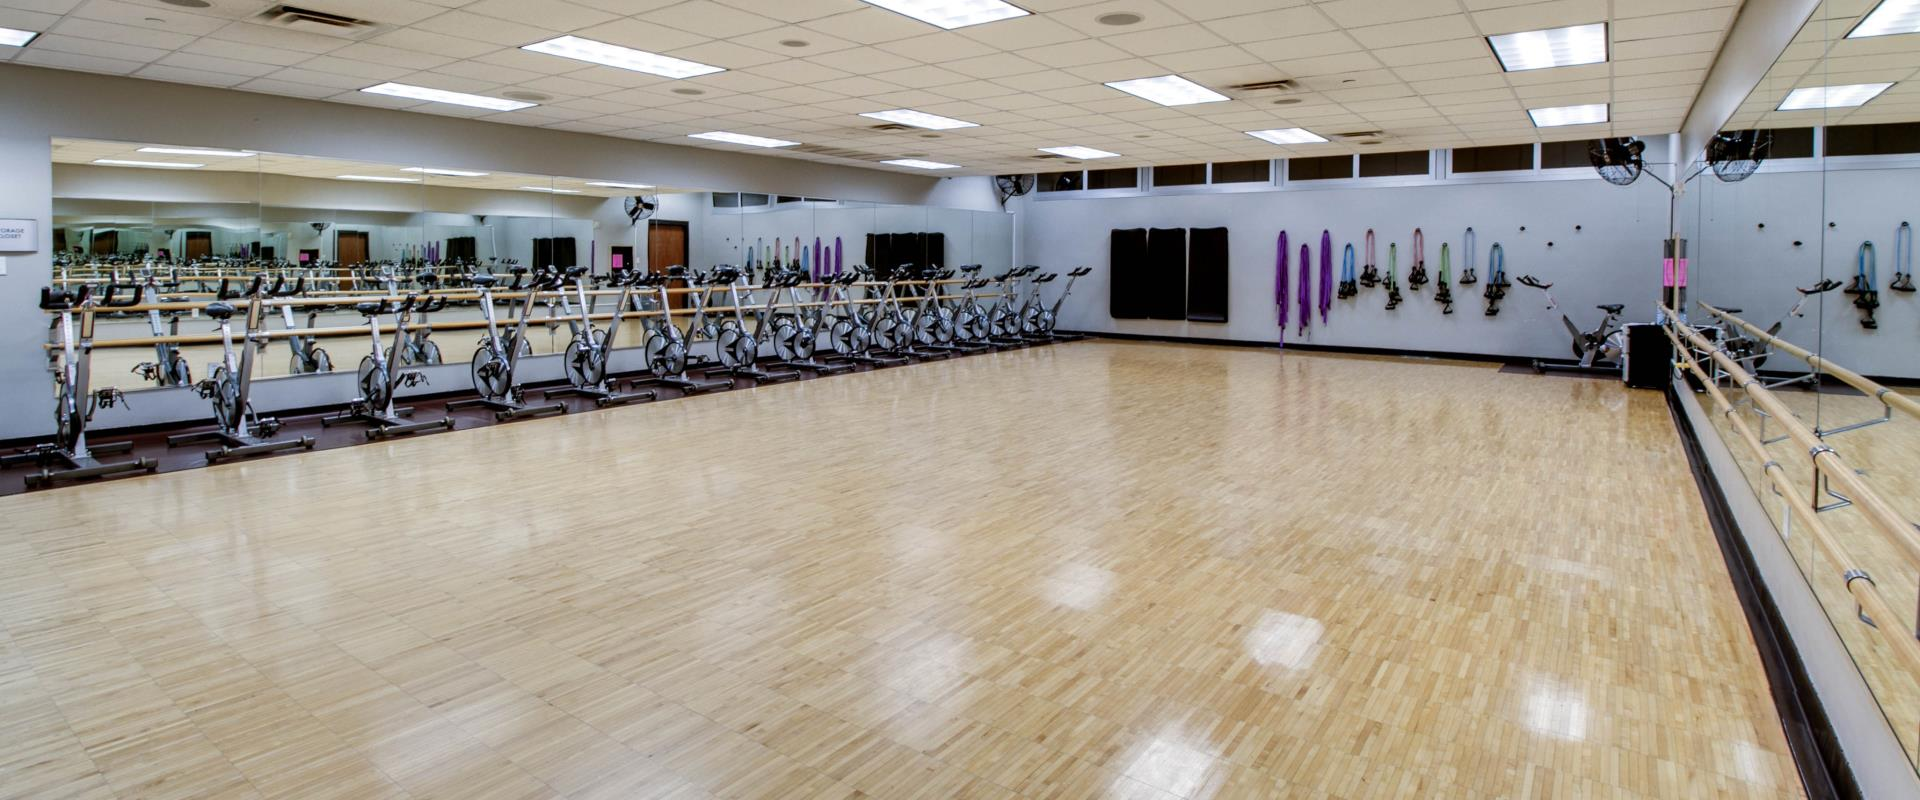 group exercise space